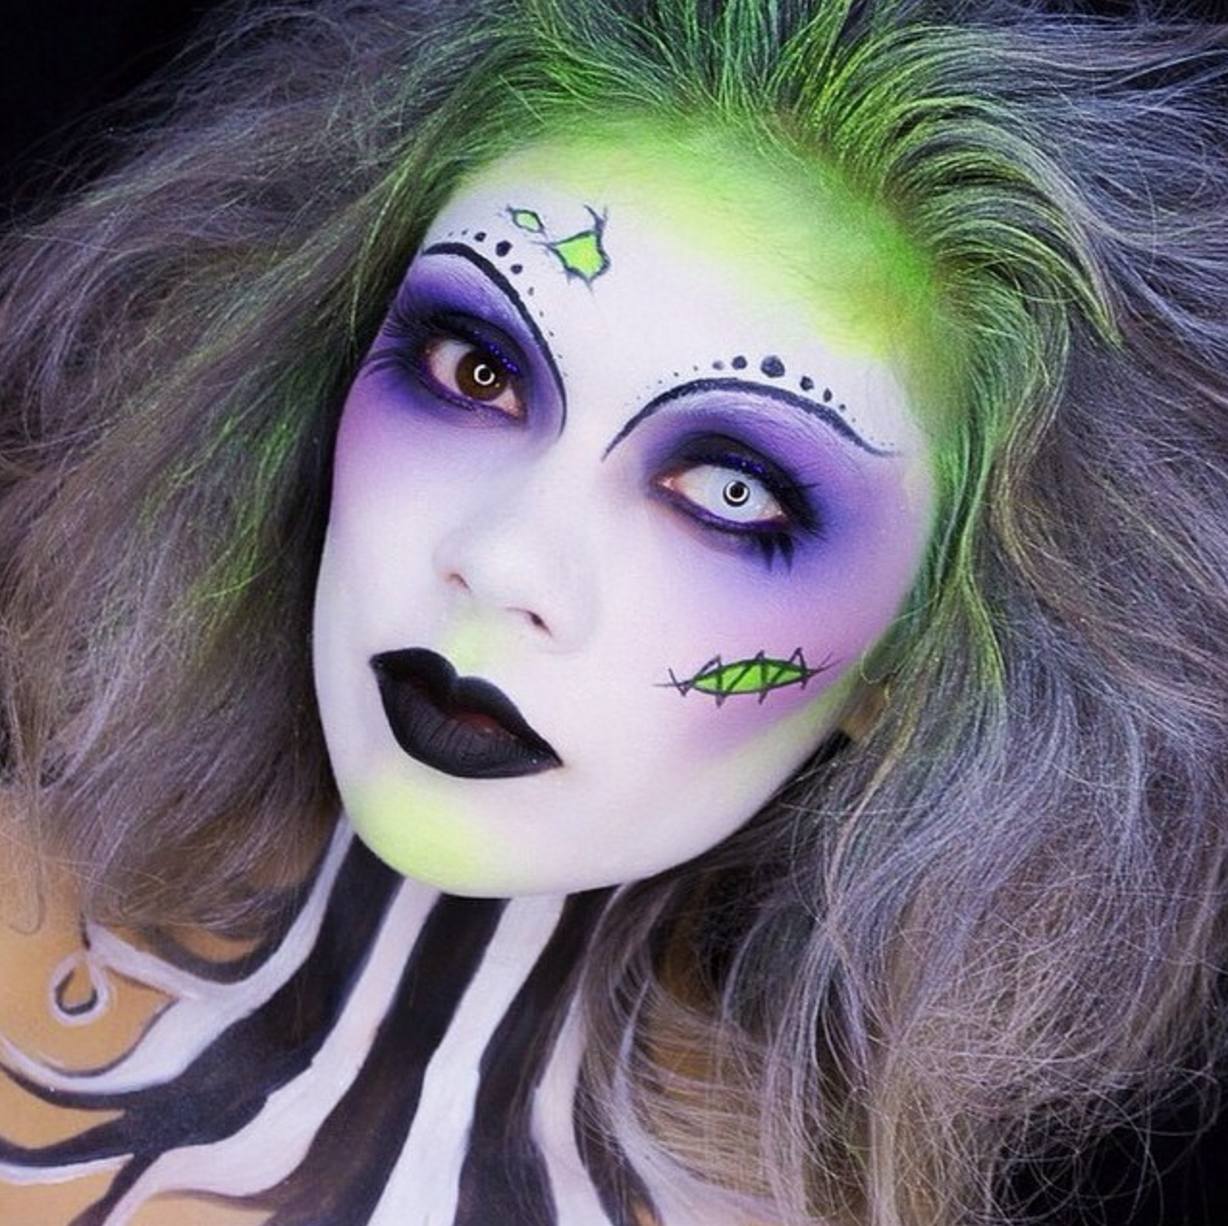 Lady beetlejuice halloween makeup